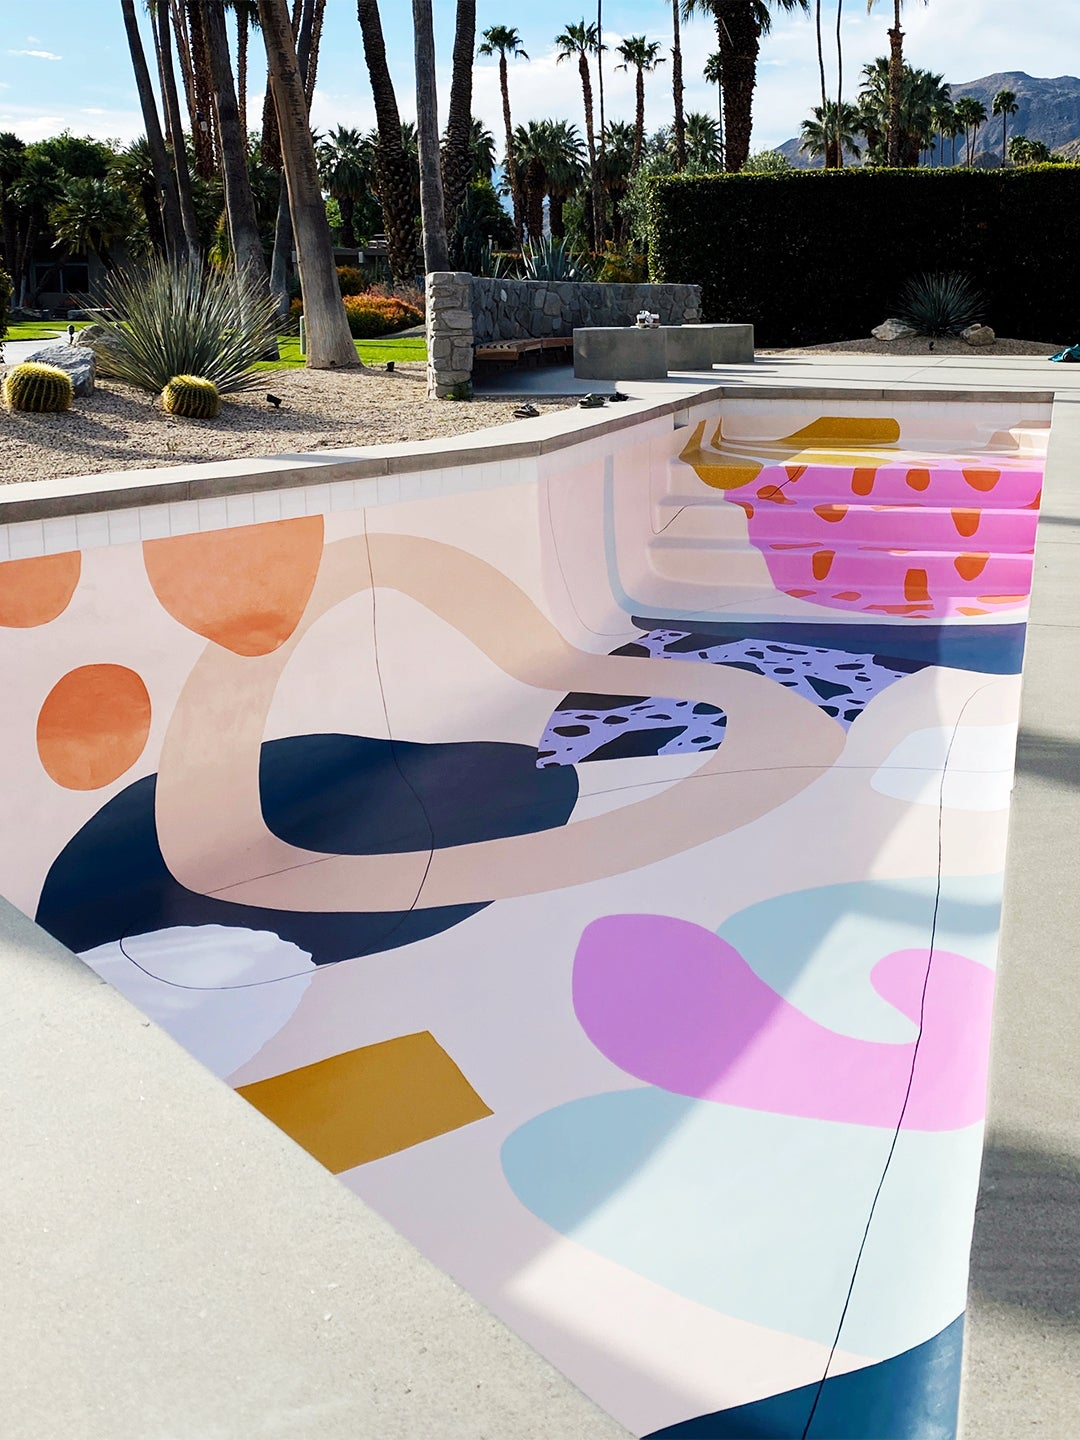 pool with colorful shapes